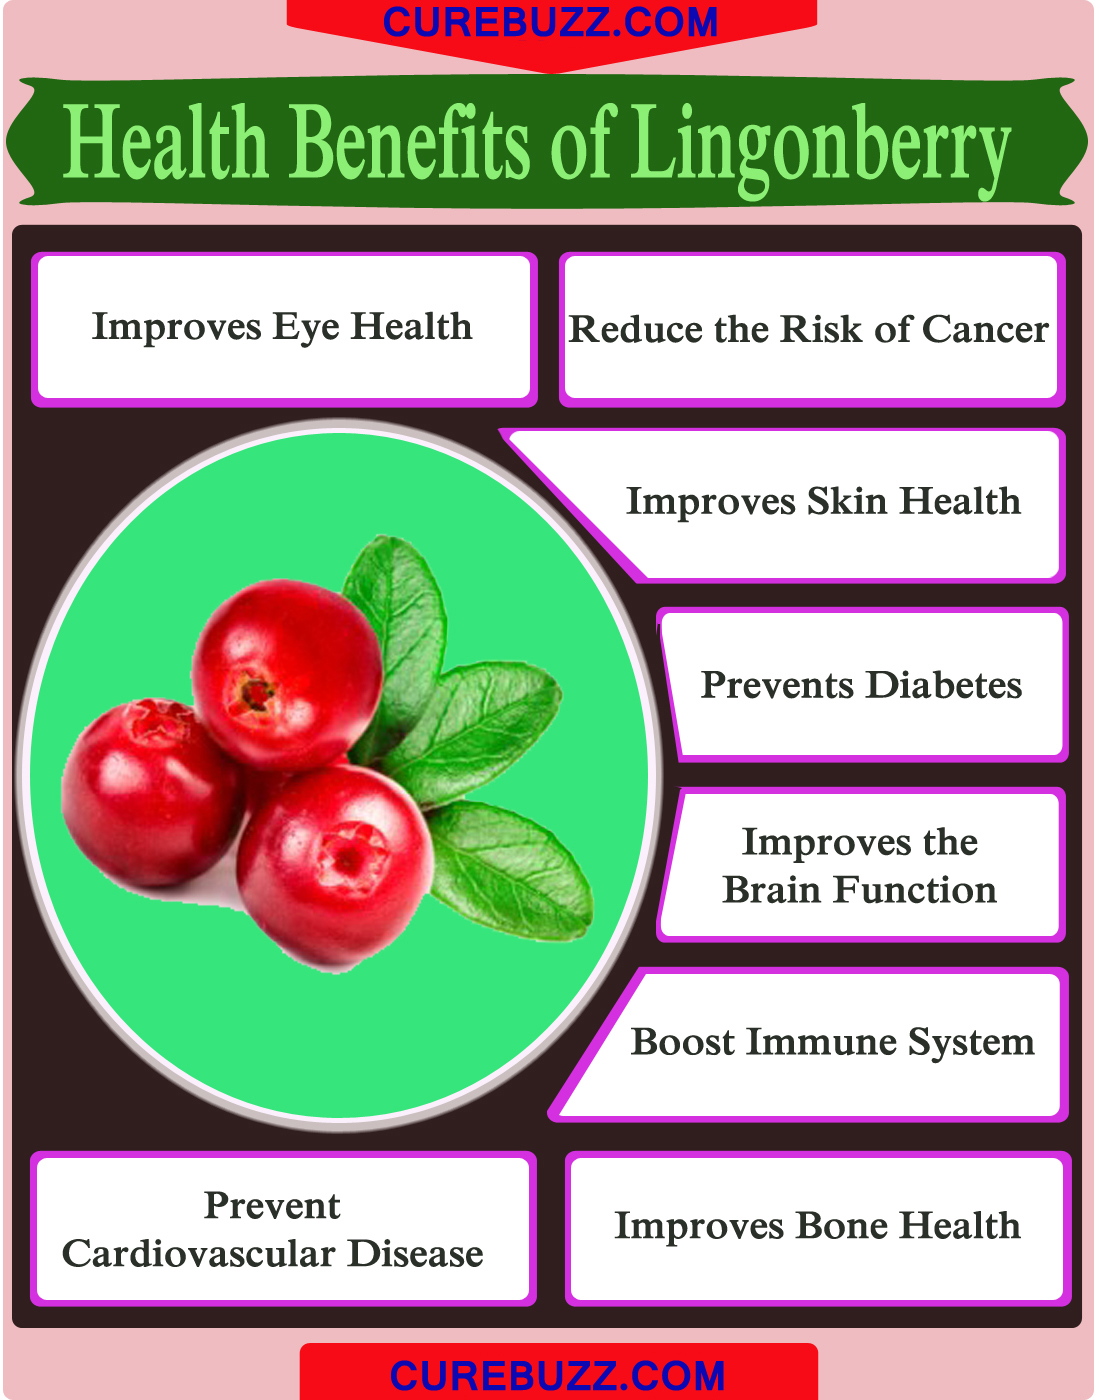 Health Benefits of Lingonberry